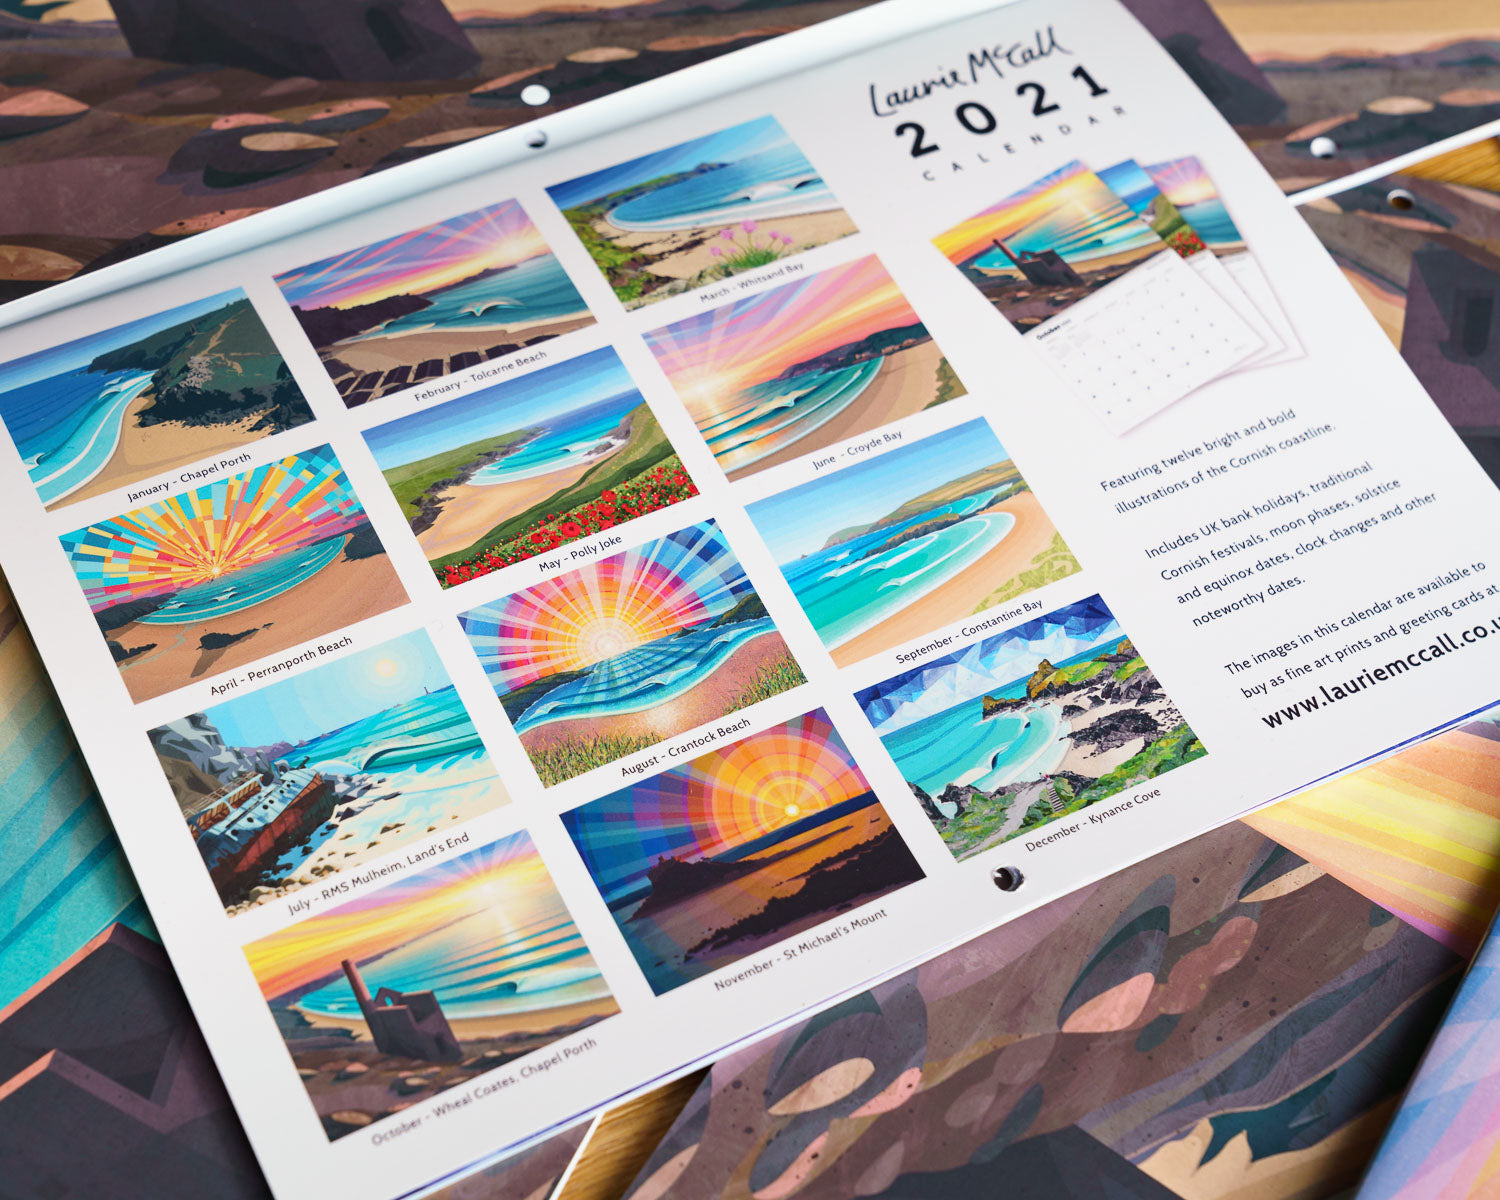 Laurie McCall Art 2021 calendar giveaway